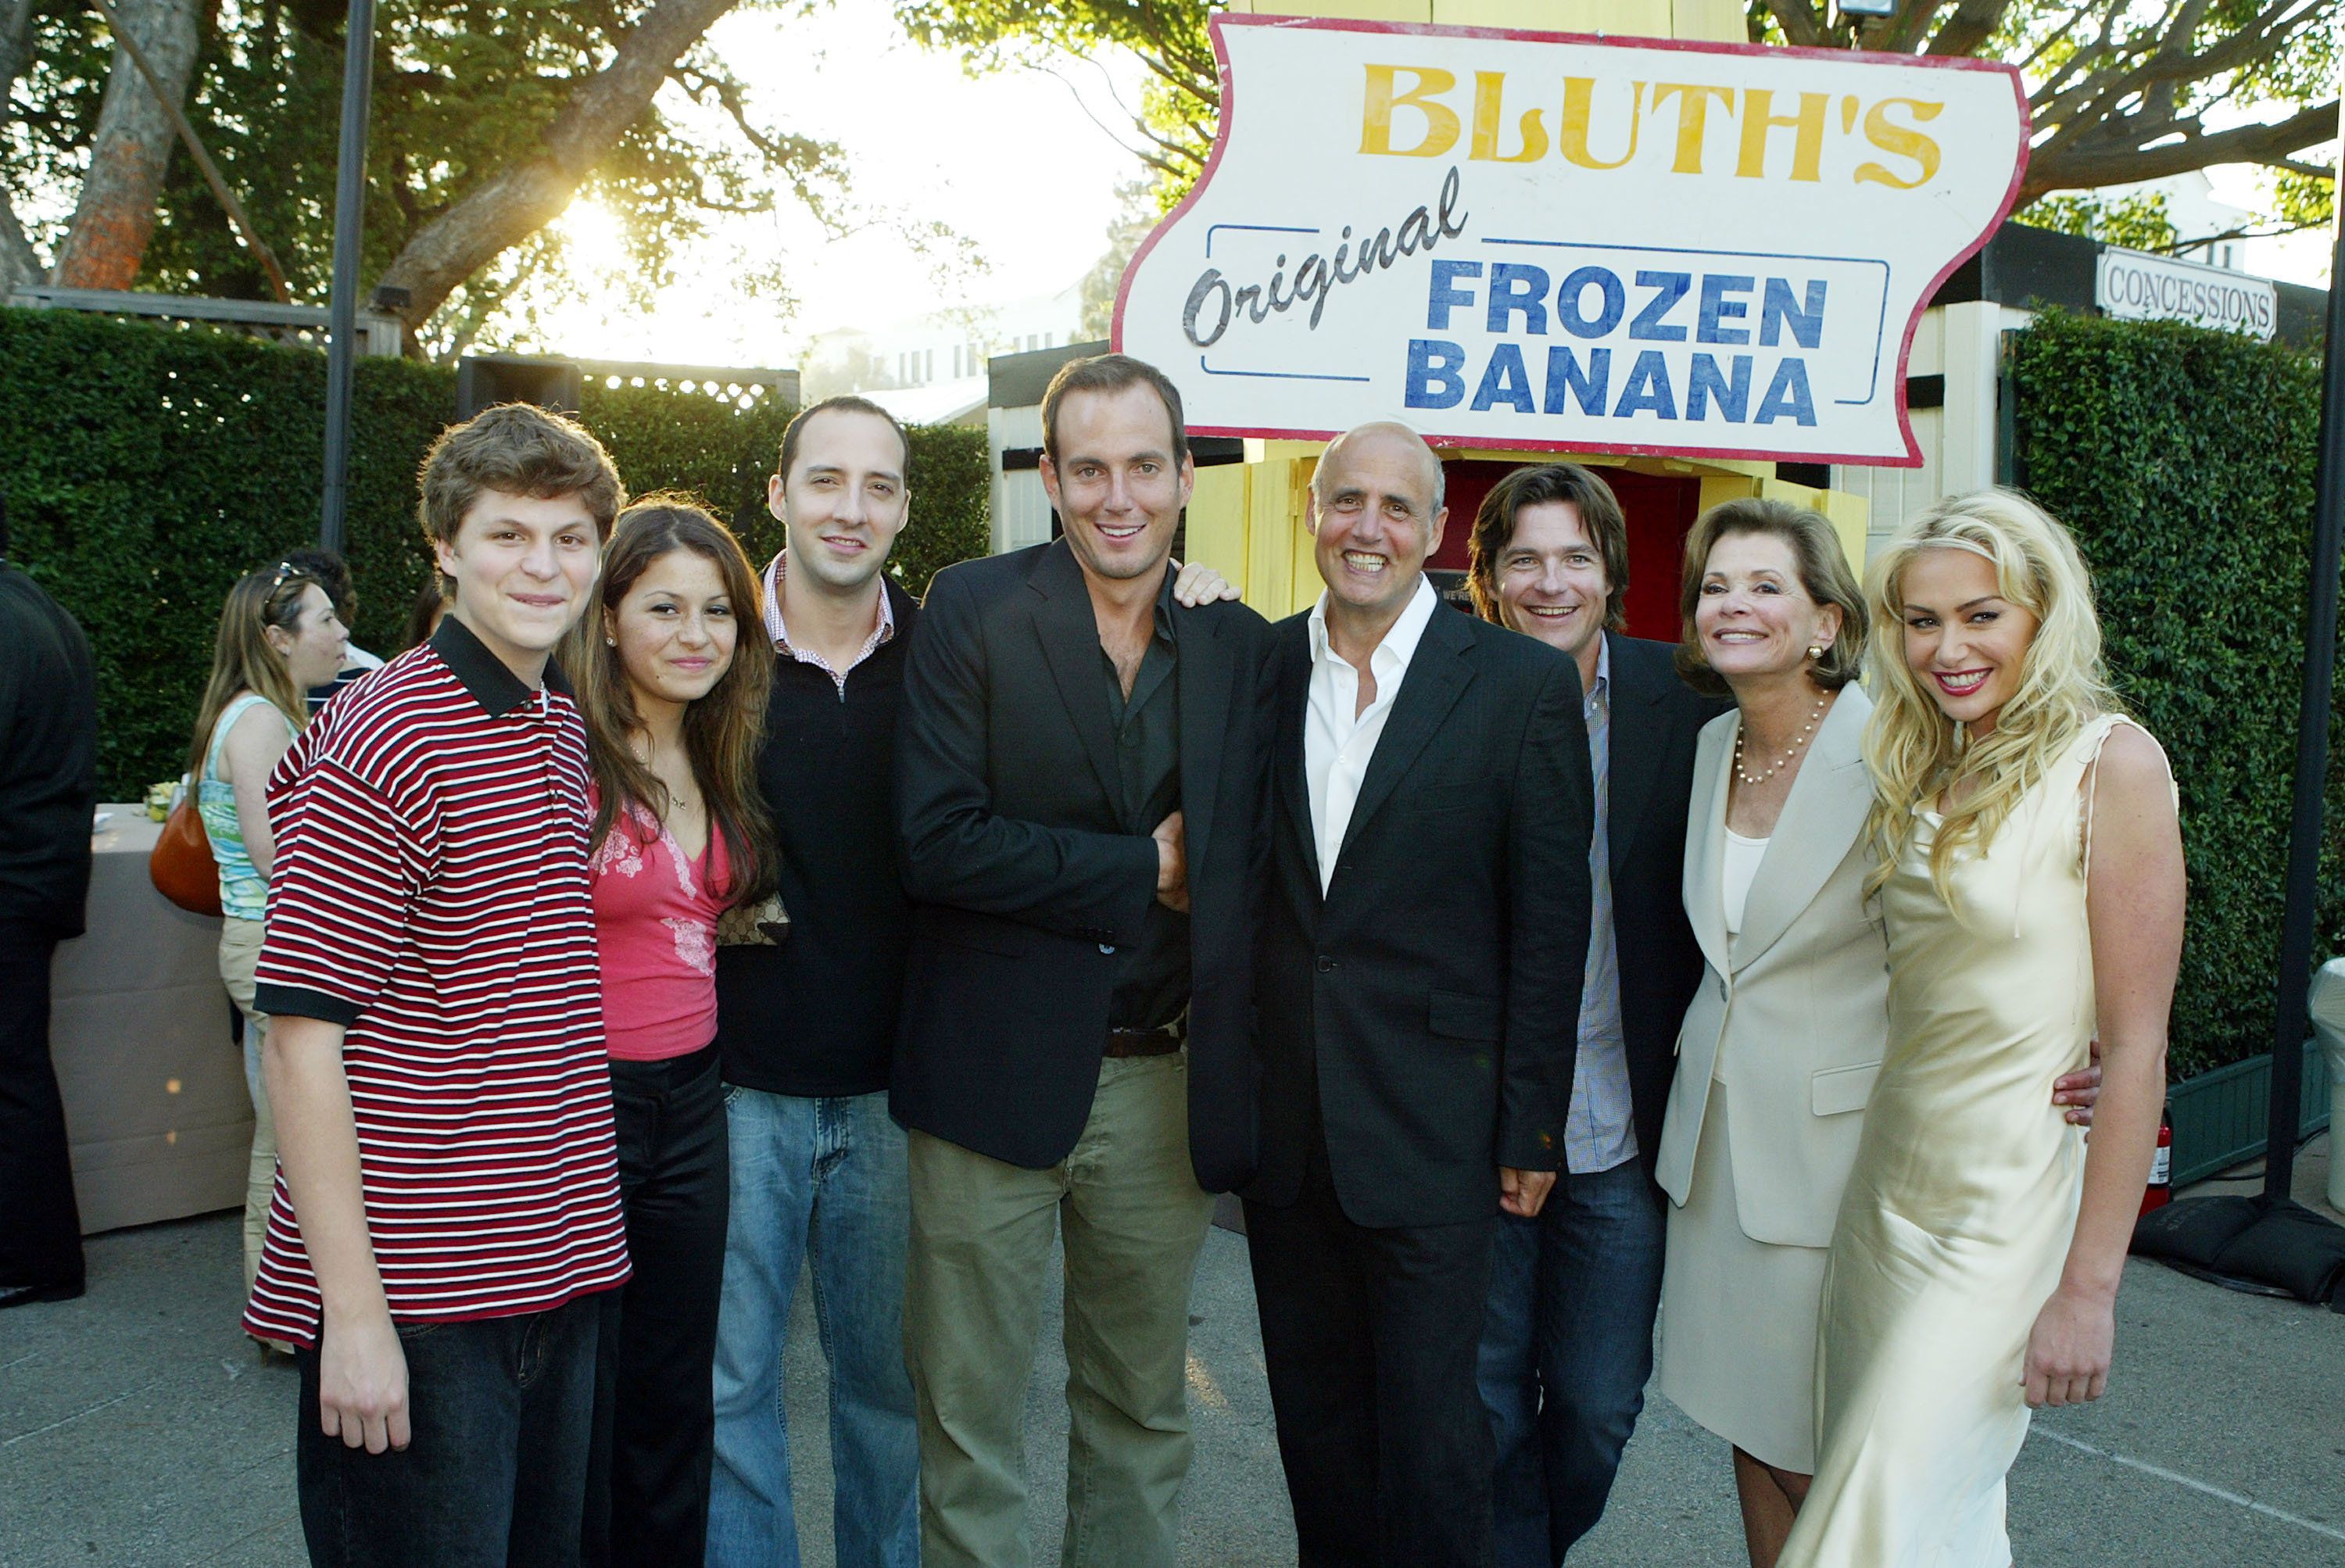 LOS ANGELES - AUGUST 13:  (L to R) Cast members Michael Cera, Alia Shawkat, Tony Hale, Will Arnett, Jeffrey Tambor, Jason Bateman, Jessica Walter and Portia de Rossi pose at a cocktail party and script reading for FOX-TV's 'Arrested Development' at the Wadsworth Theater on August 13, 2004 in Los Angeles, California.  (Photo by Kevin Winter/Getty Images)